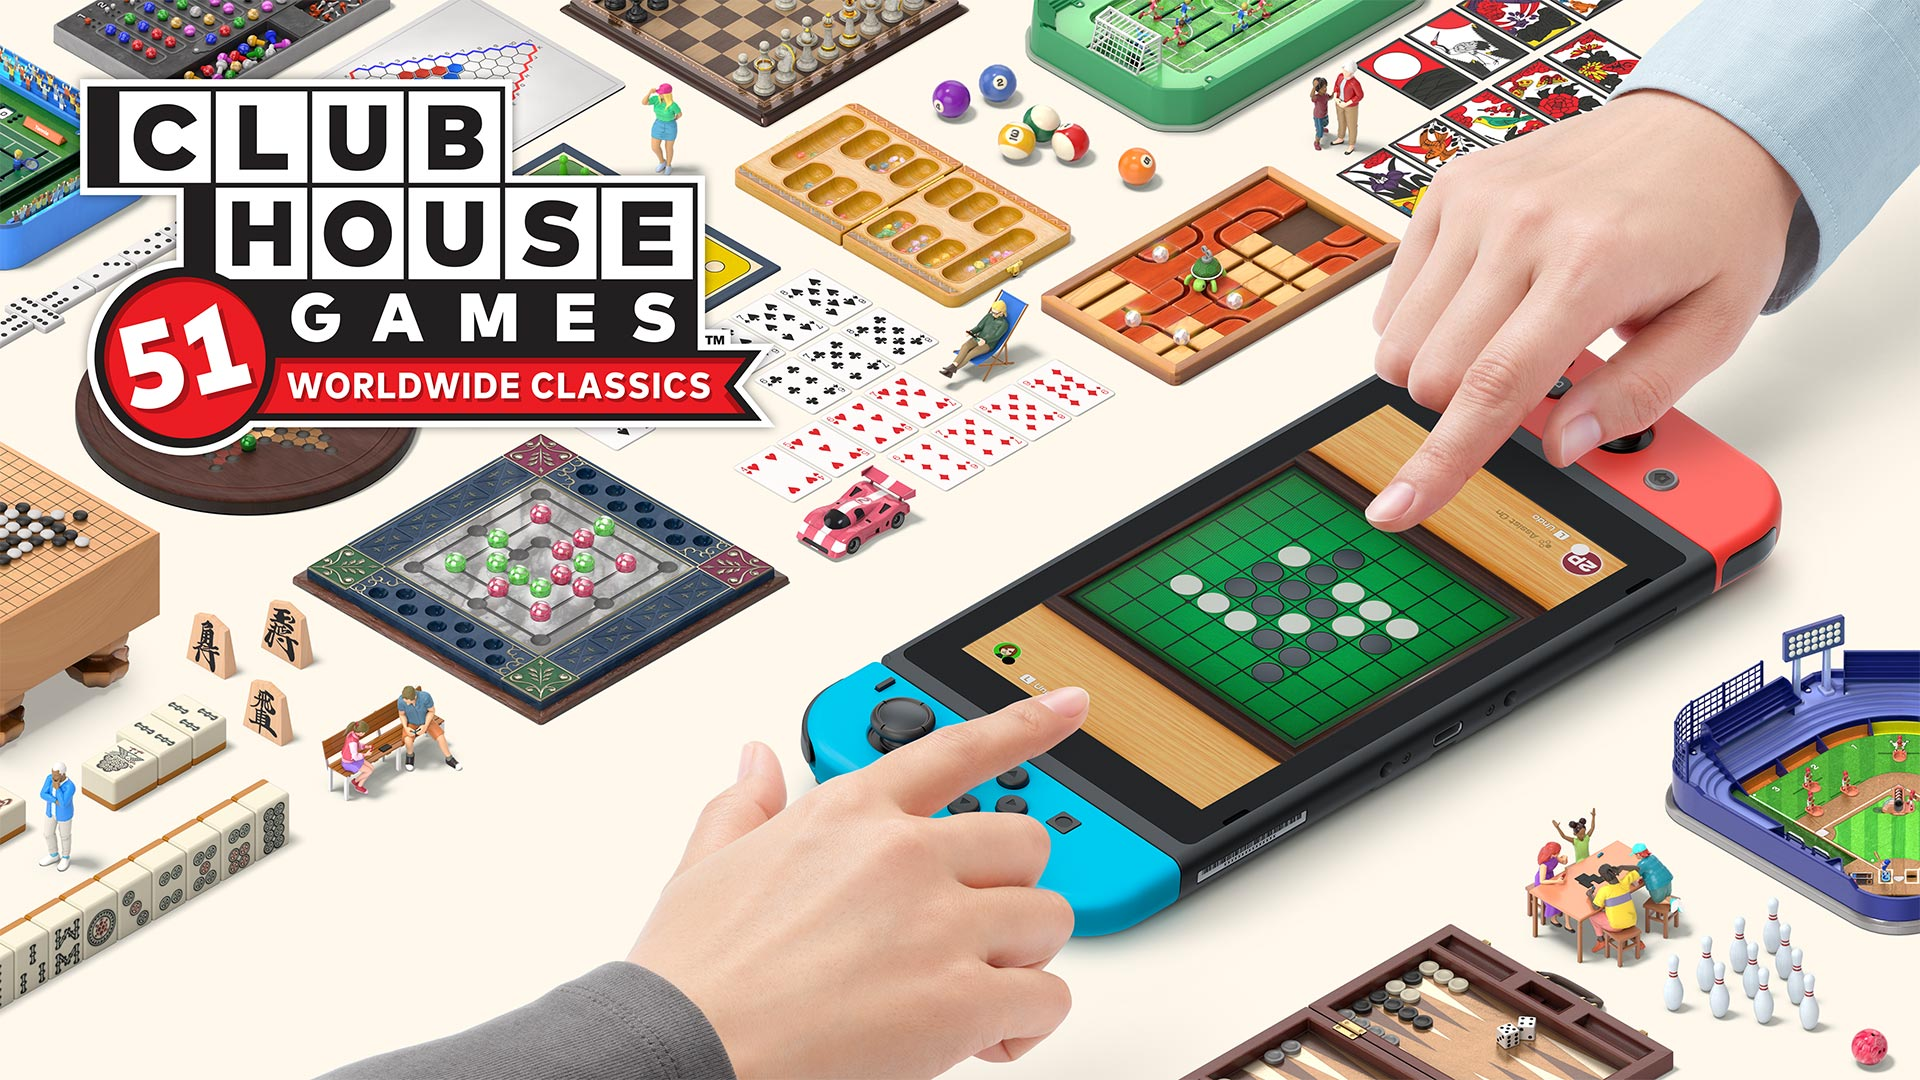 Clubhouse Games: 51 Worldwide Classics heads to Switch on June 4th, 2020, will see retail release, preloads live today